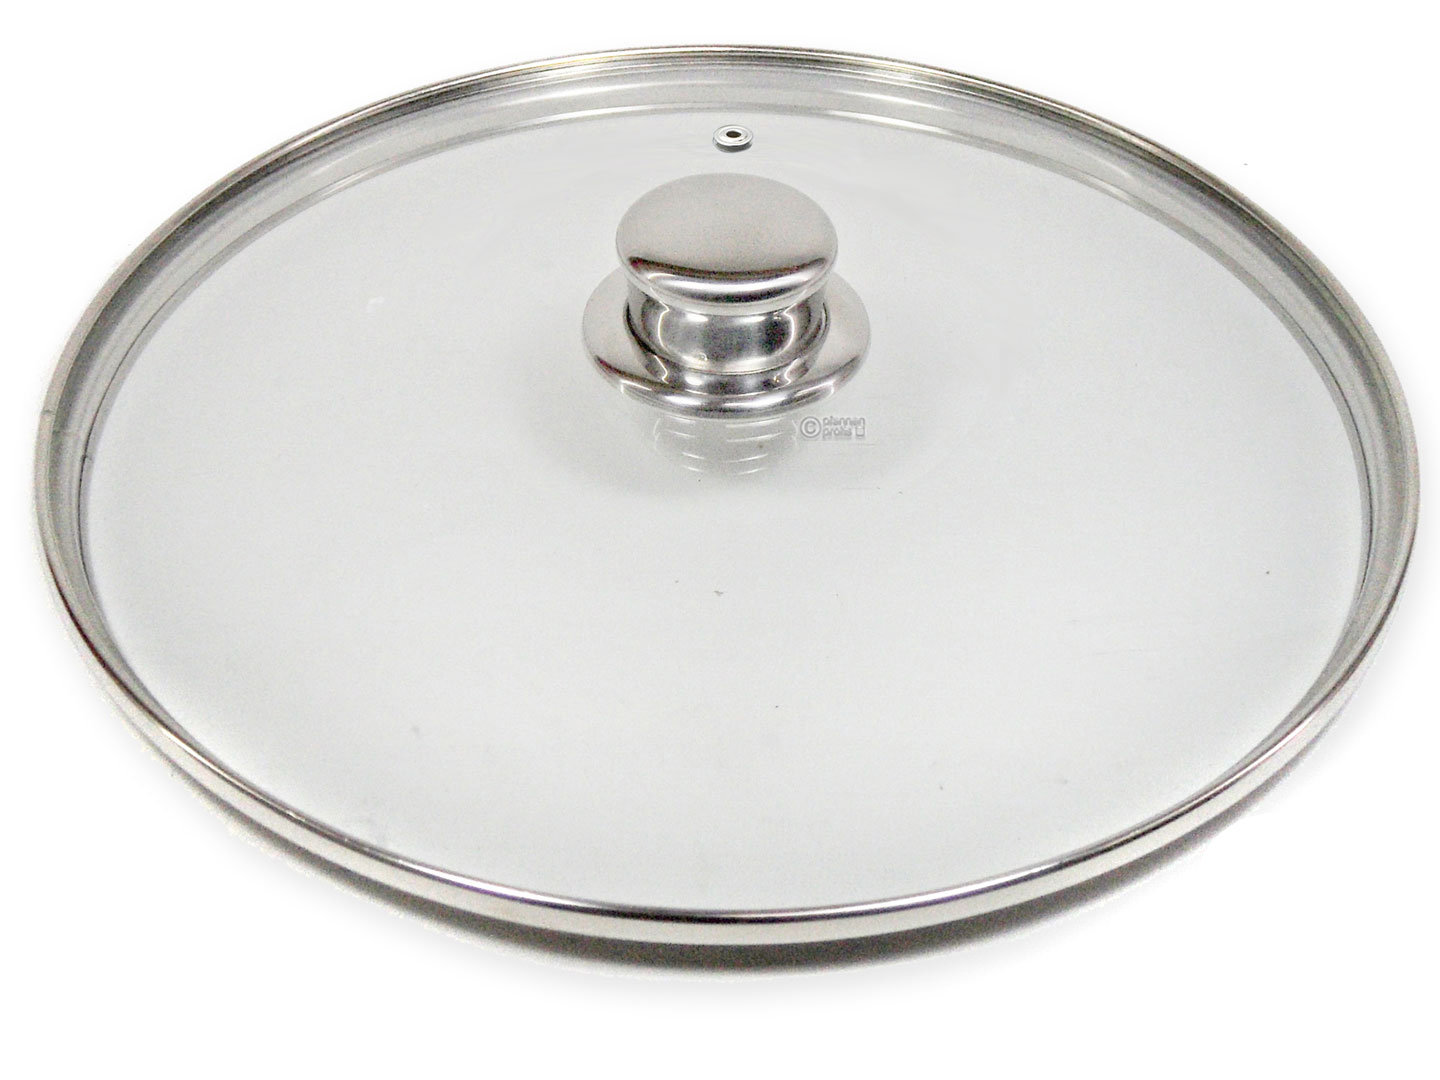 BEKA glass lid CRISTAL 32 cm ovenproof up to 180°C